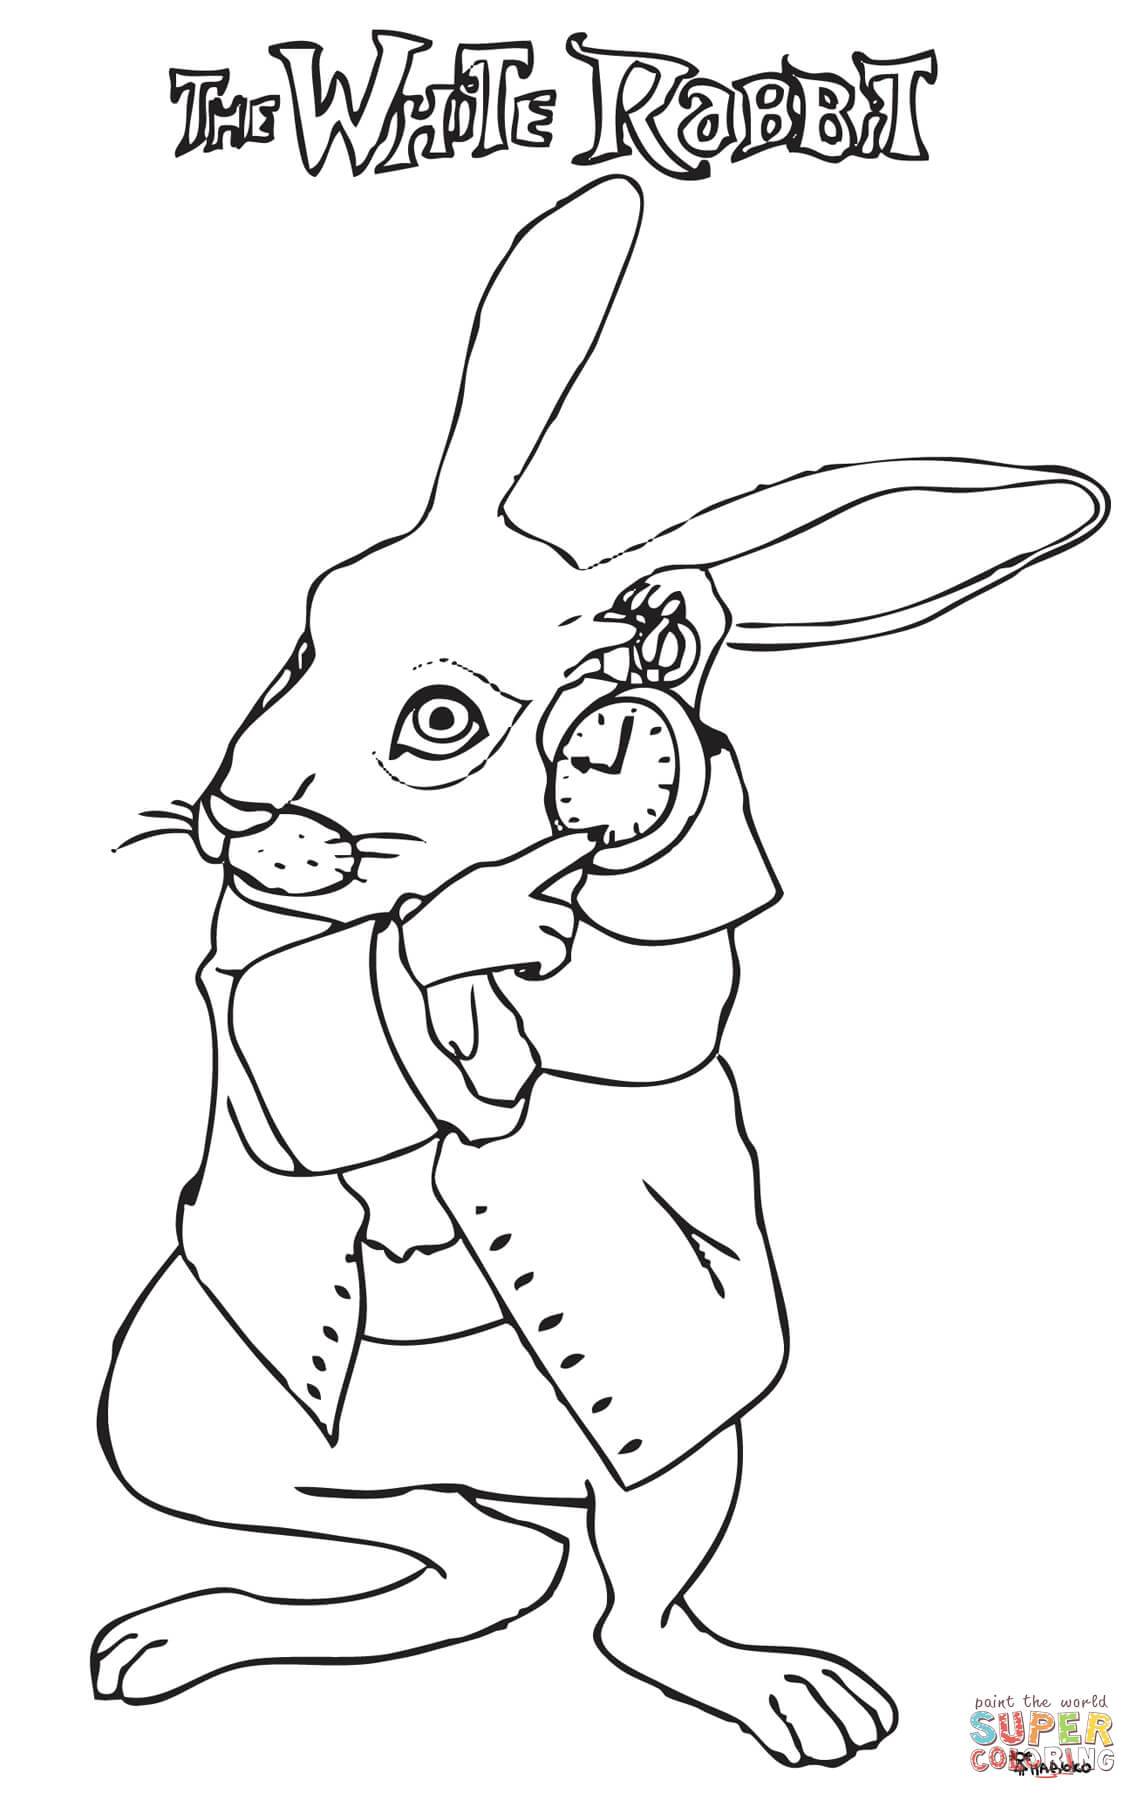 1138x1800 The White Rabbit In A Hurry Coloring Page Free Printable